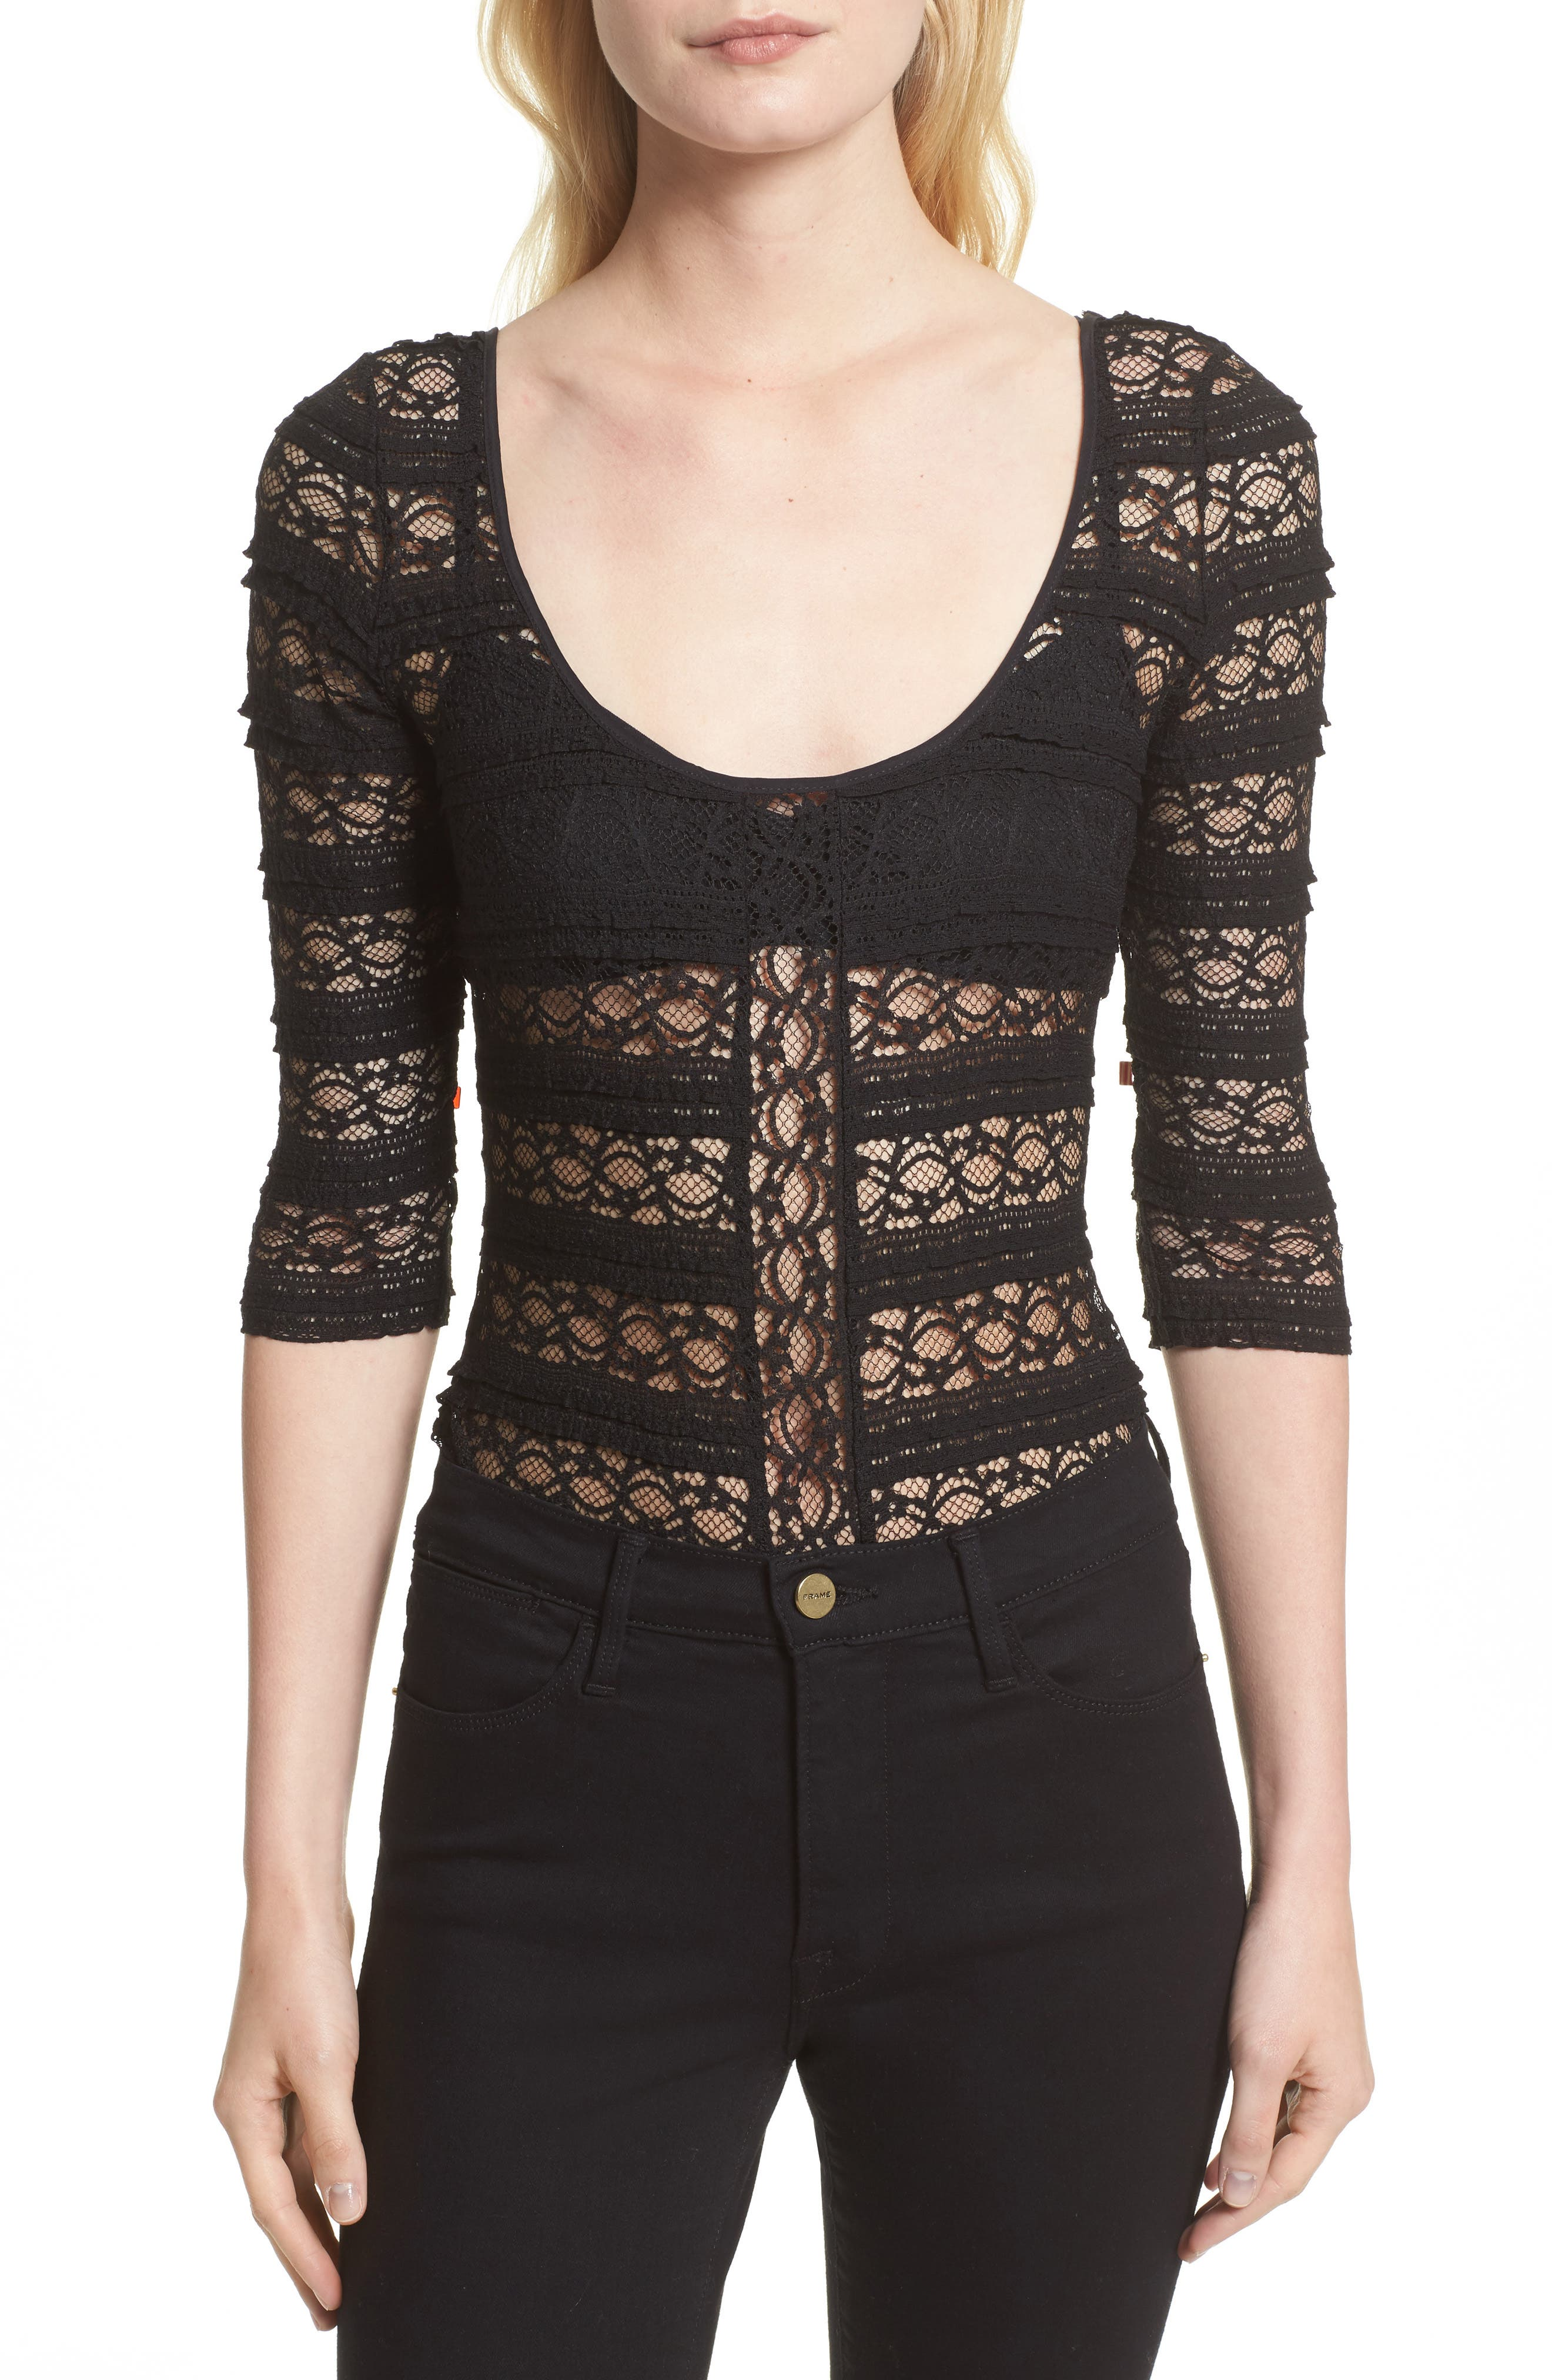 Cinq à Sept Marla Silk Lace Bodysuit (Nordstrom Exclusive)